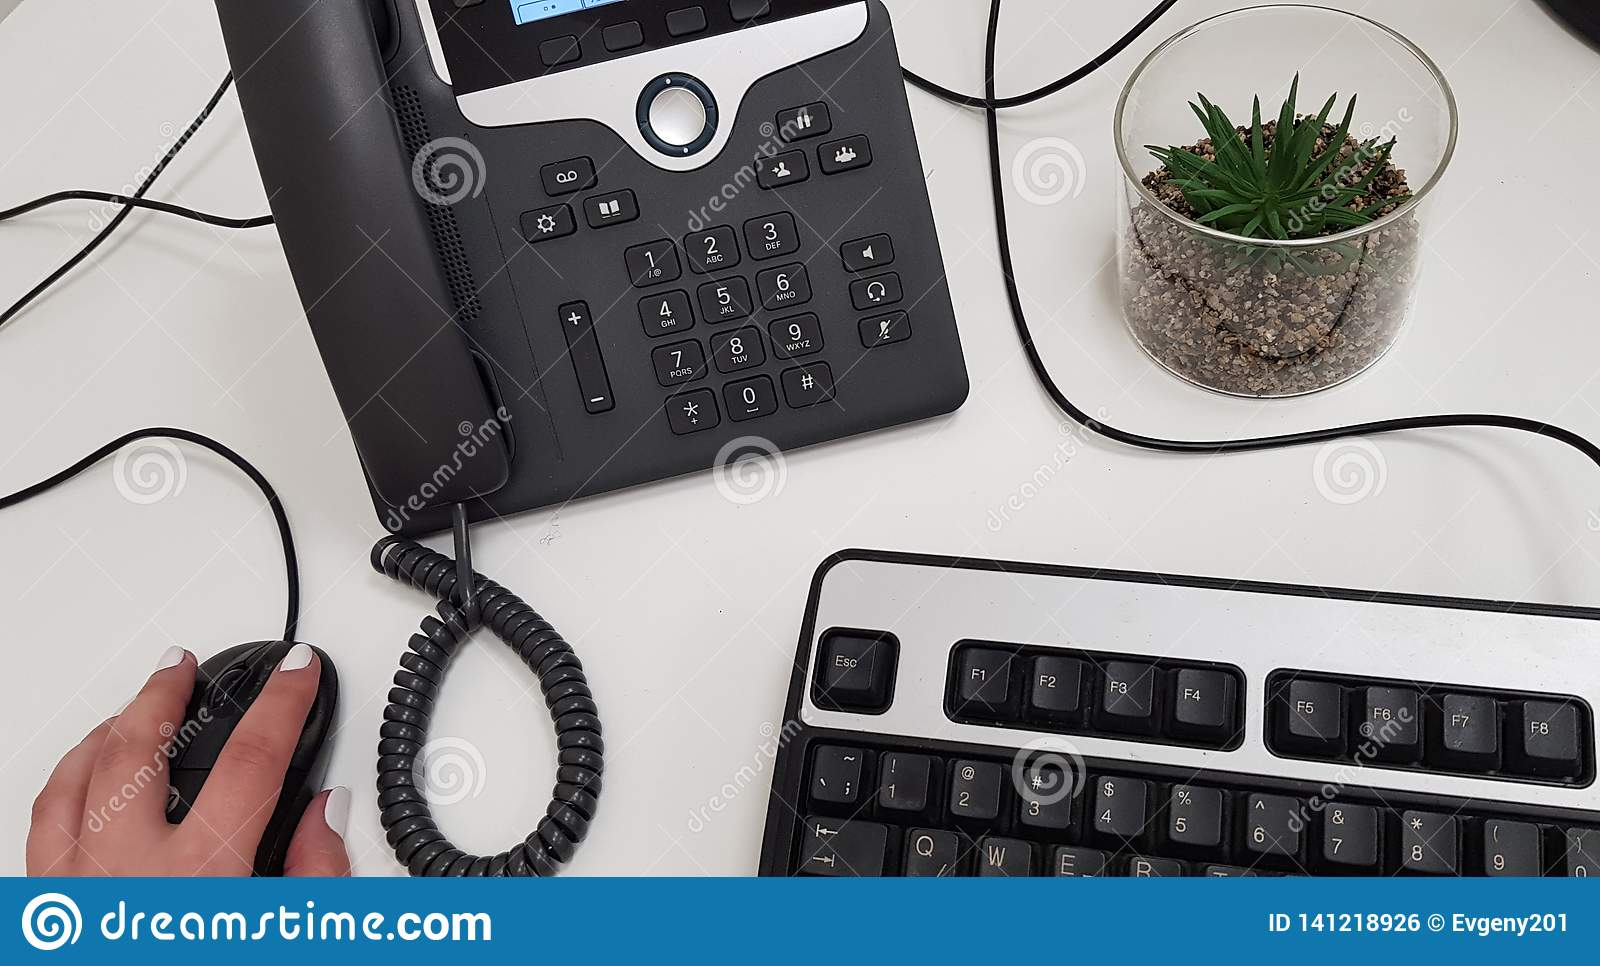 Female hand on black computer mouse near office phone